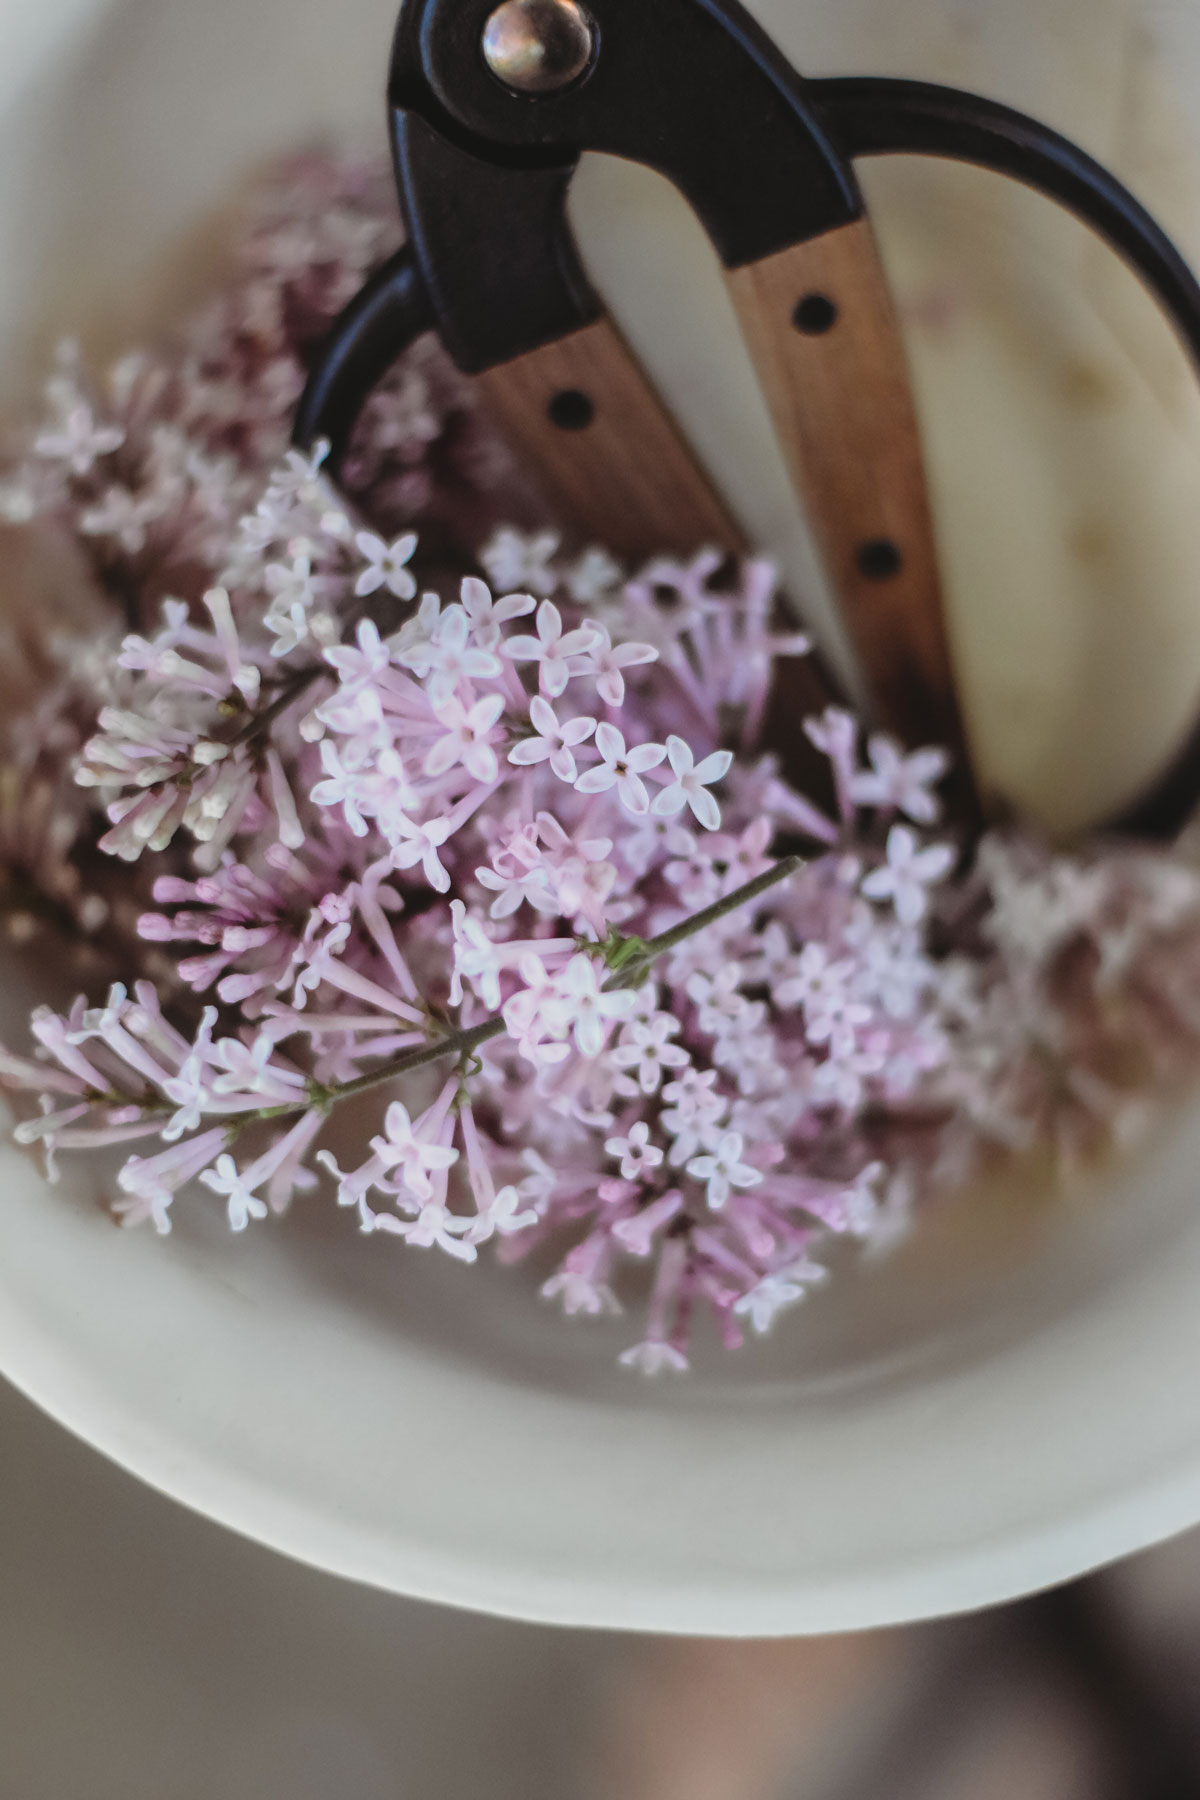 What is enfleurage? A bowl of lilac flowers with scissors